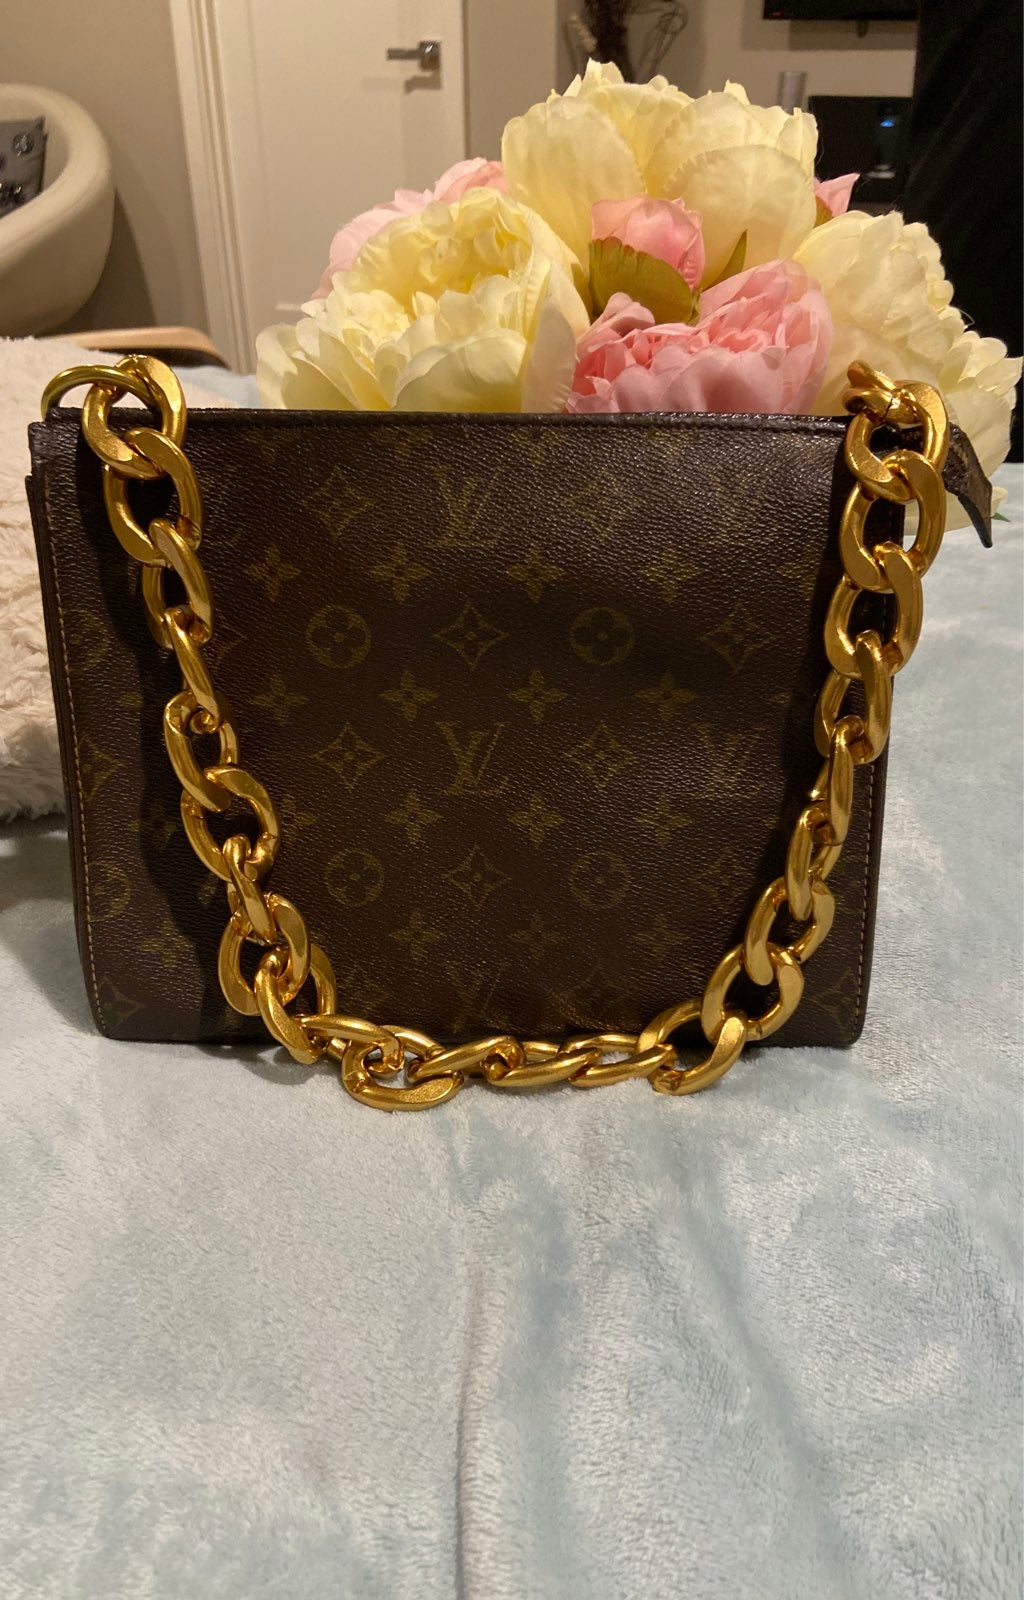 Louis Vuitton Toiletry Bag 25